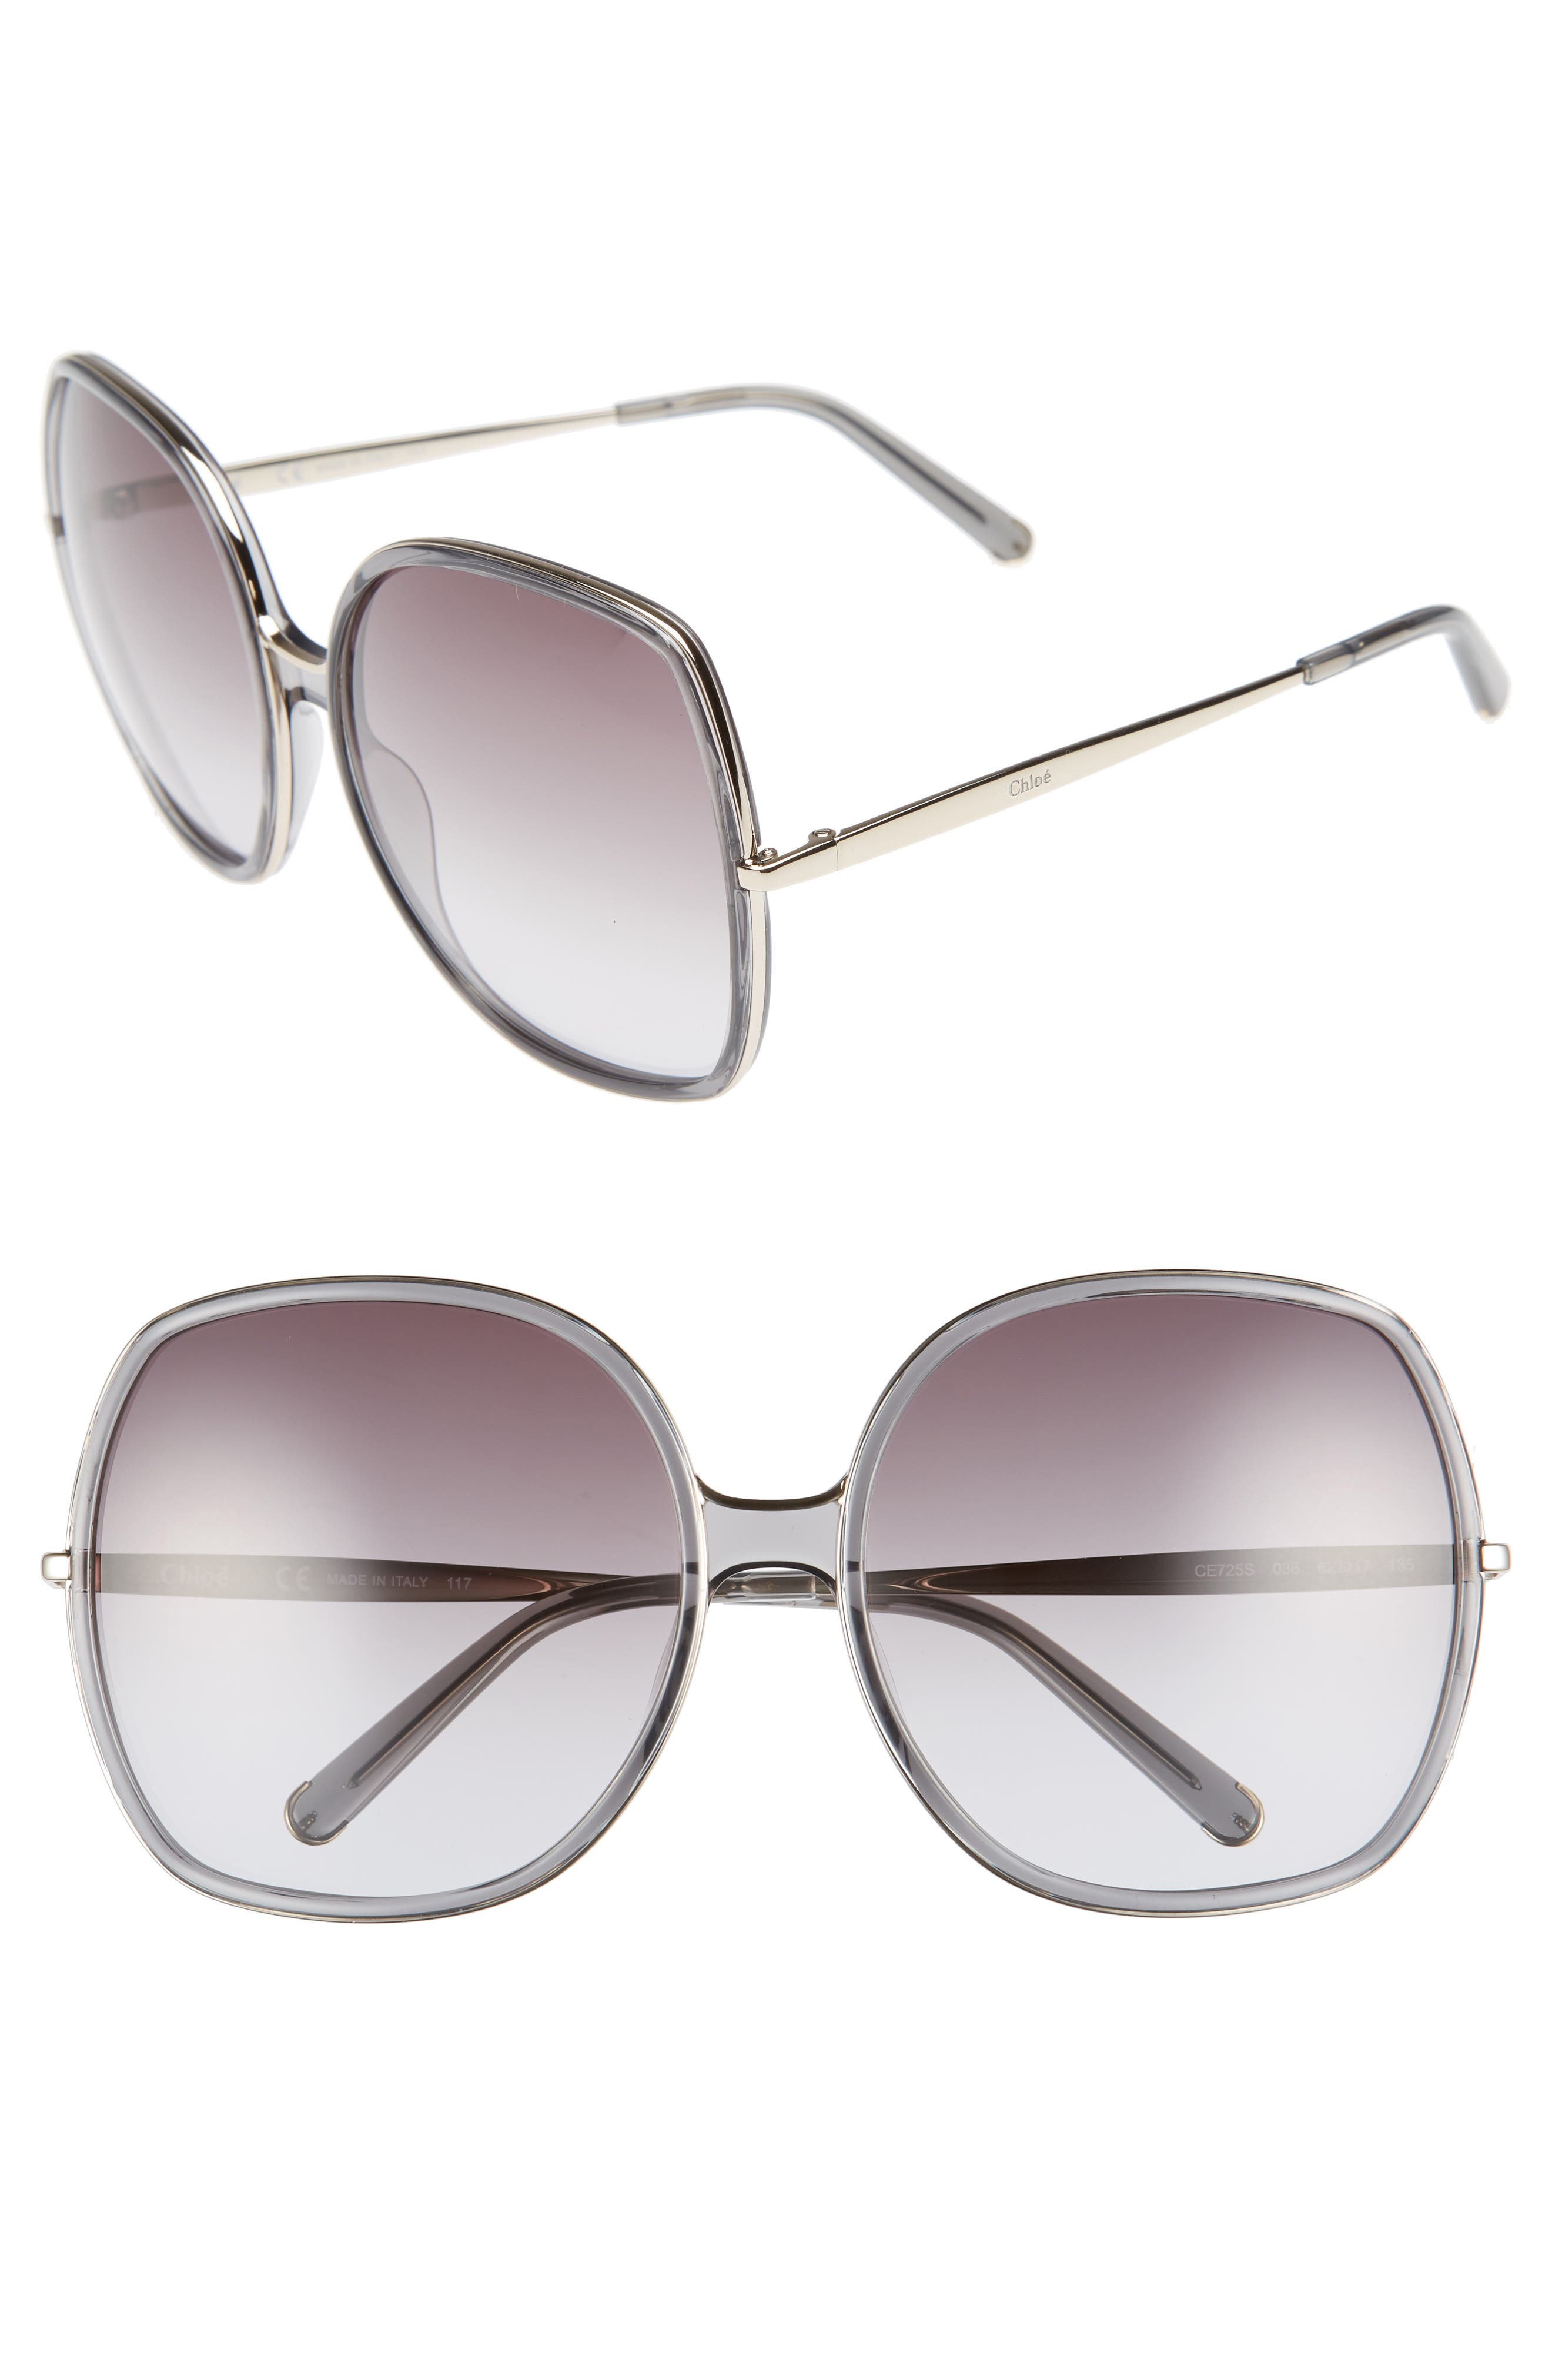 Chloé 62mm Oversized Gradient Lens Square Sunglasses